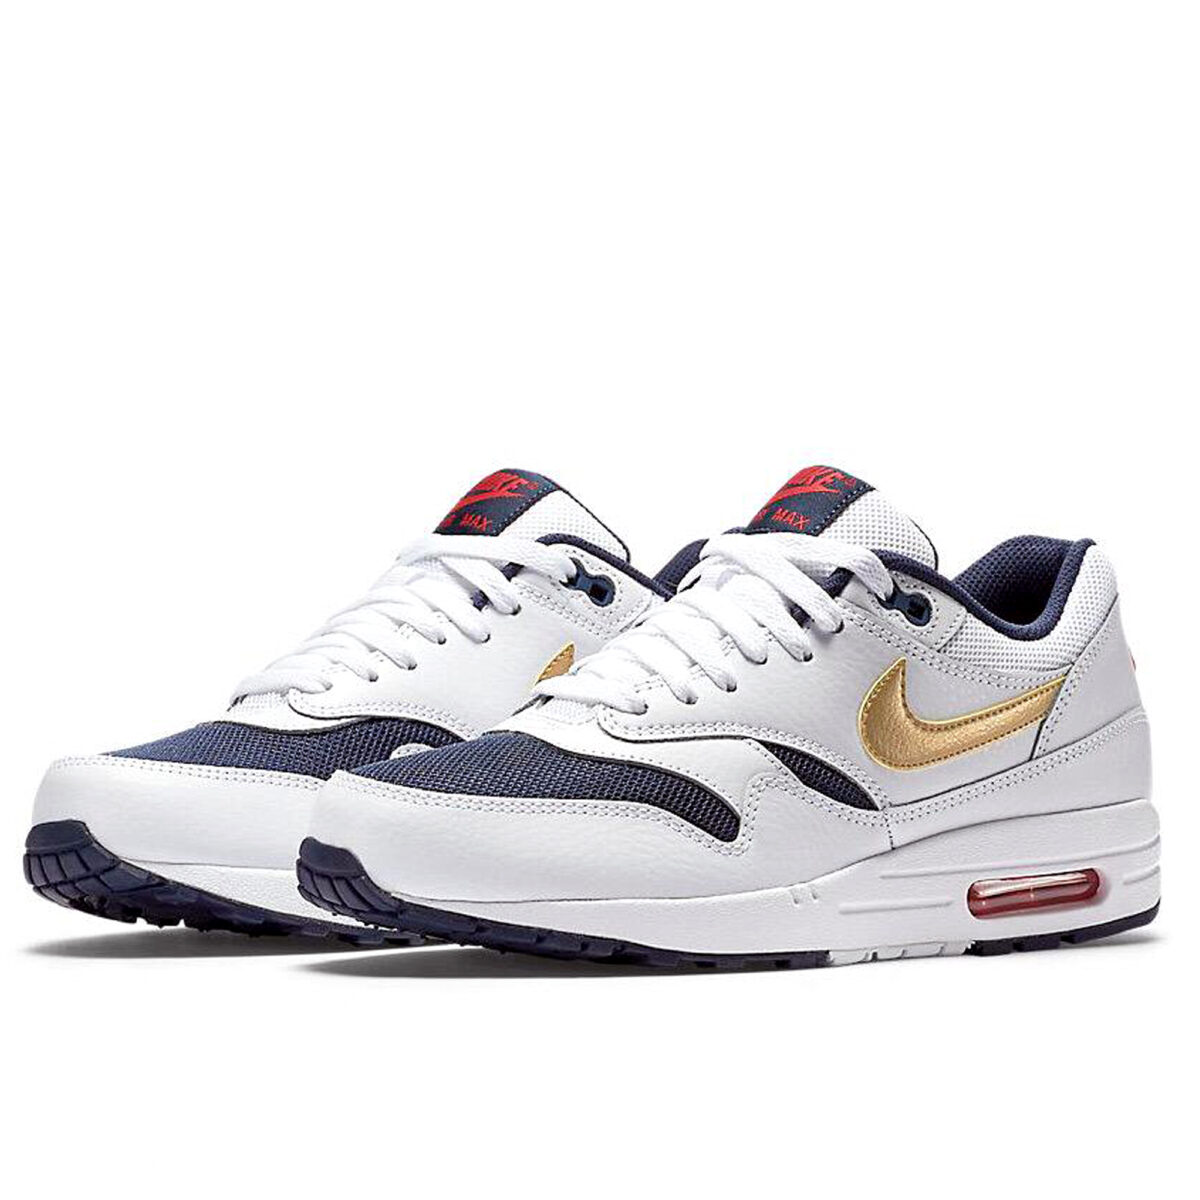 nike air max 1 essential olympic 2015 537383_127 купить